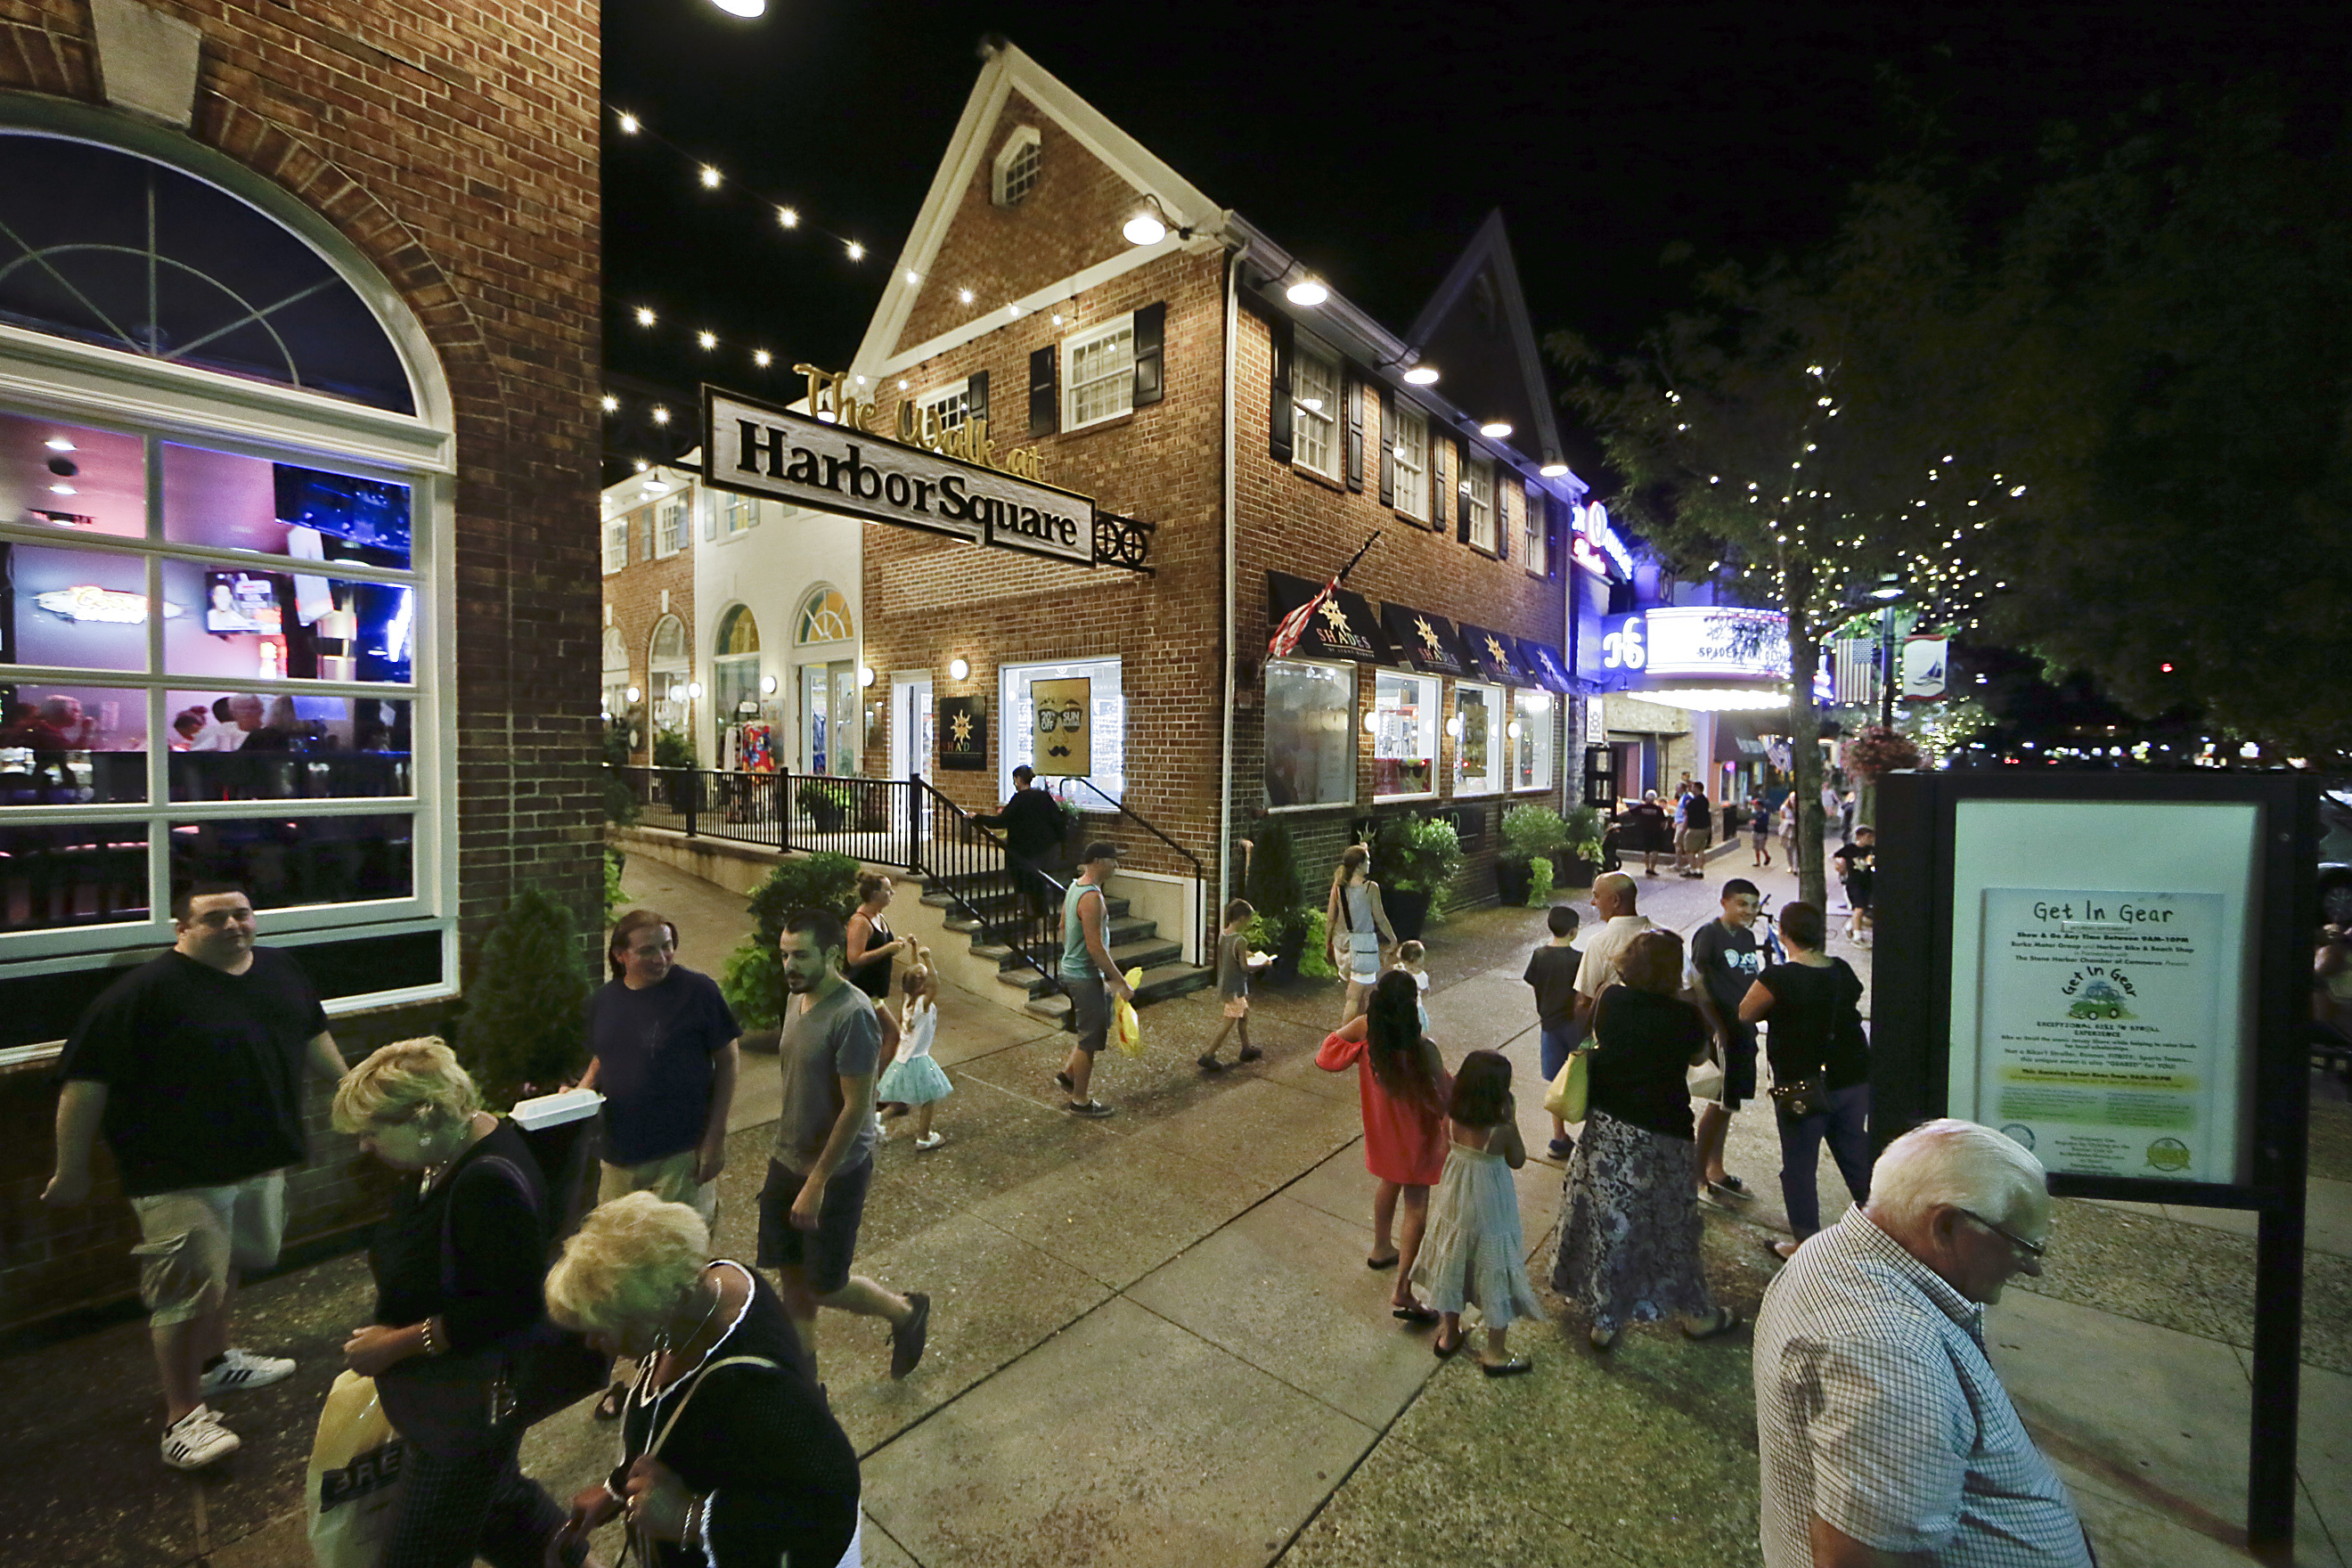 Lots of people out and about just before 9 pm at The Walk at Harbor Square (in foreground), the Harbor Square Theatre and Harbor Burger Bar (in background) on 96th St. in Stone Harbor on a recent evening